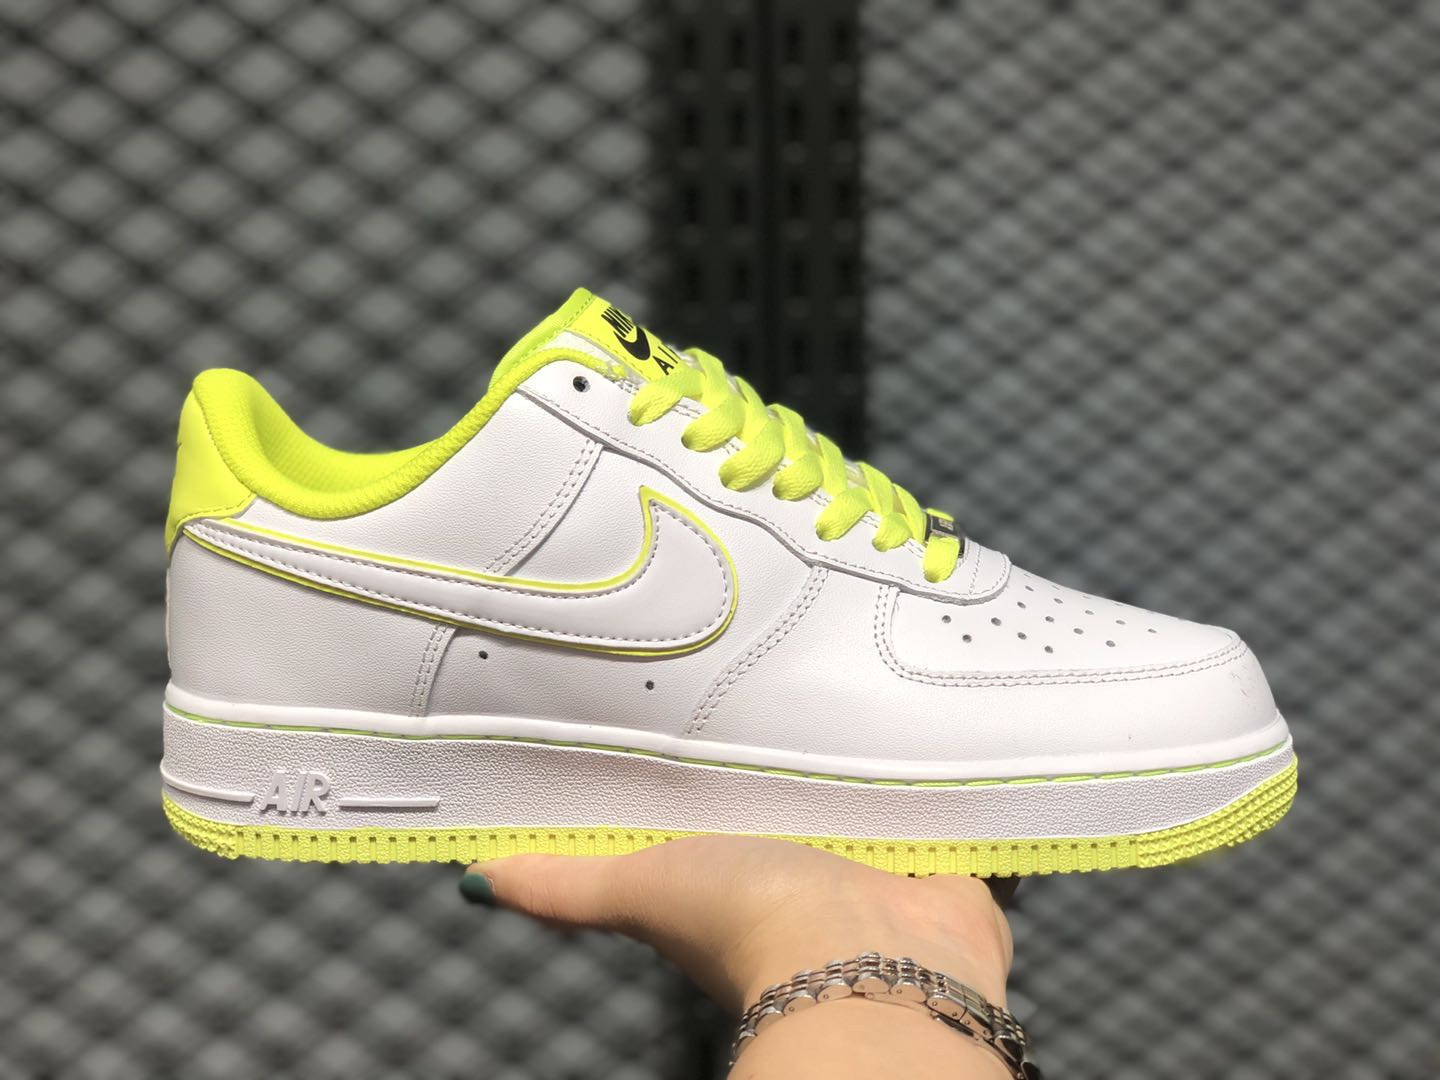 2020 Latest Nike Air Force 1 Low White/Paper Yellow 808128-616